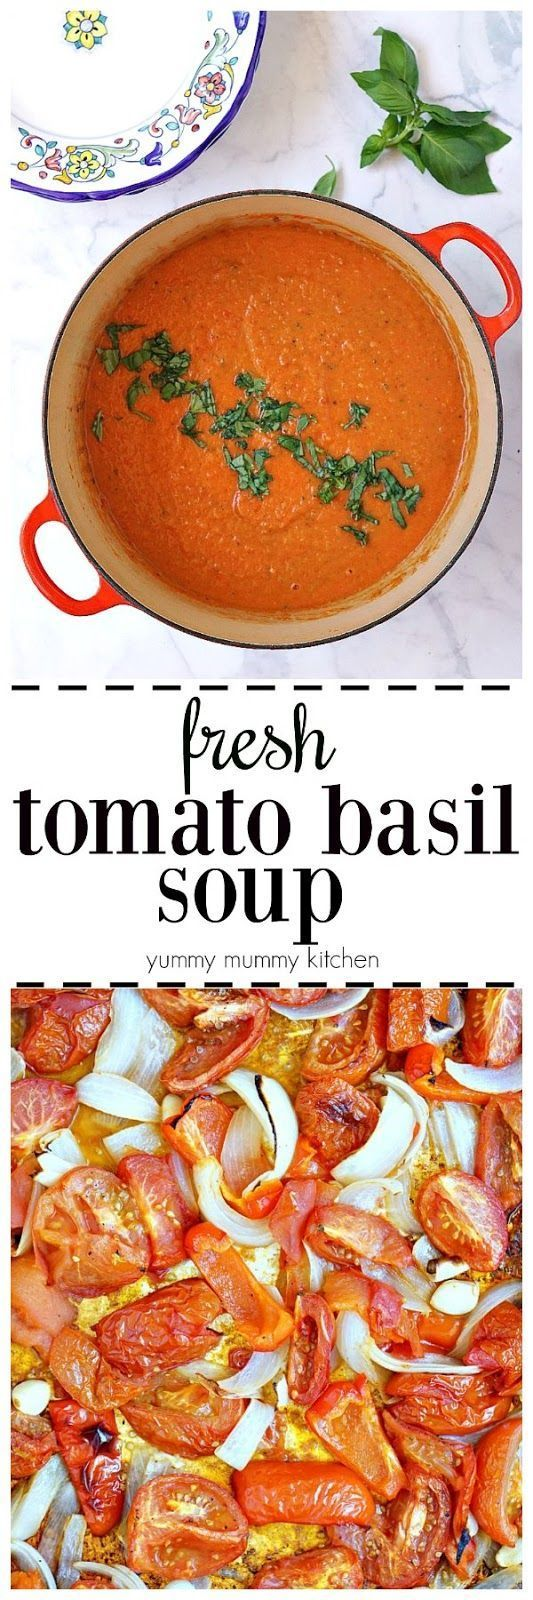 This fresh tomato basil soup is so easy and delicious! Fresh tomatoes are roasted in the oven and blended in a blender with fresh basil. This creamy tomato soup is naturally vegan.